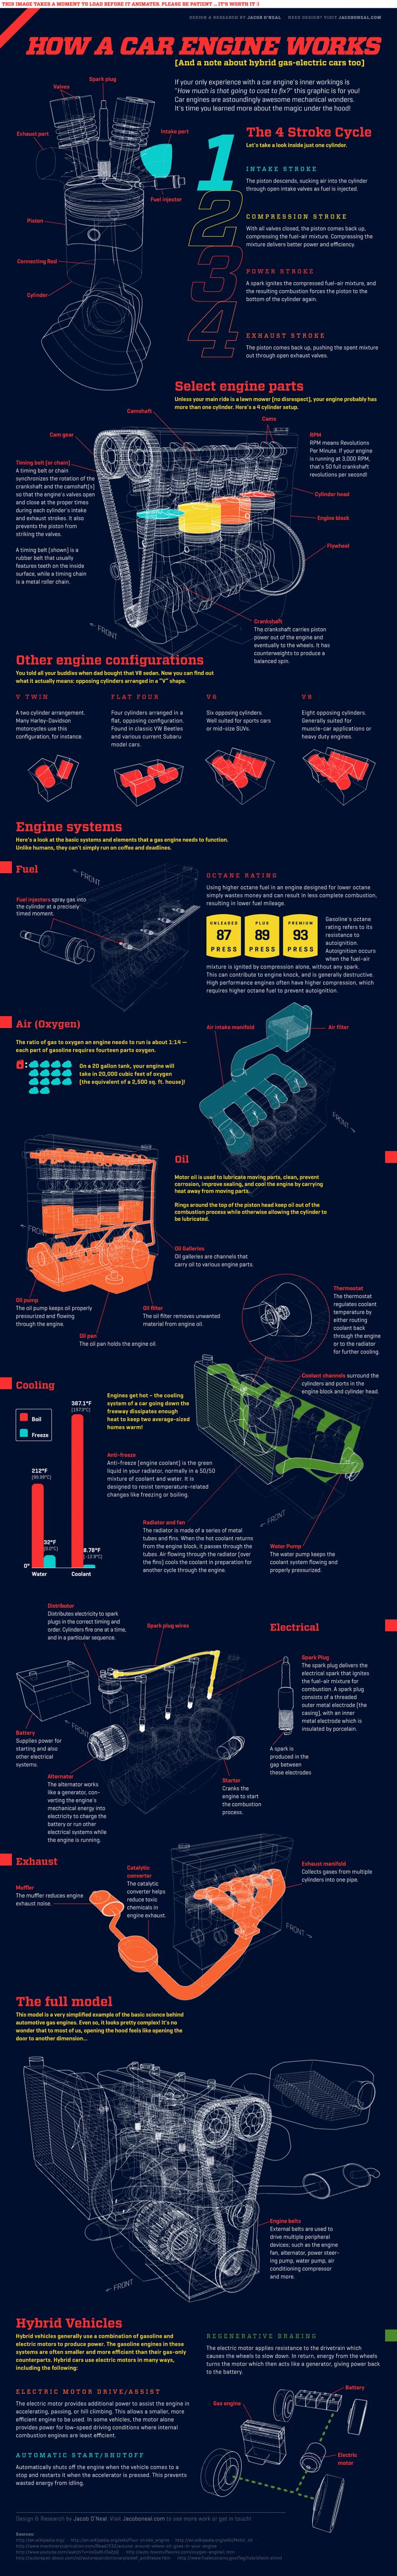 Cómo funciona el motor de un automovil? - #infografia / How a car engine works - #infographic